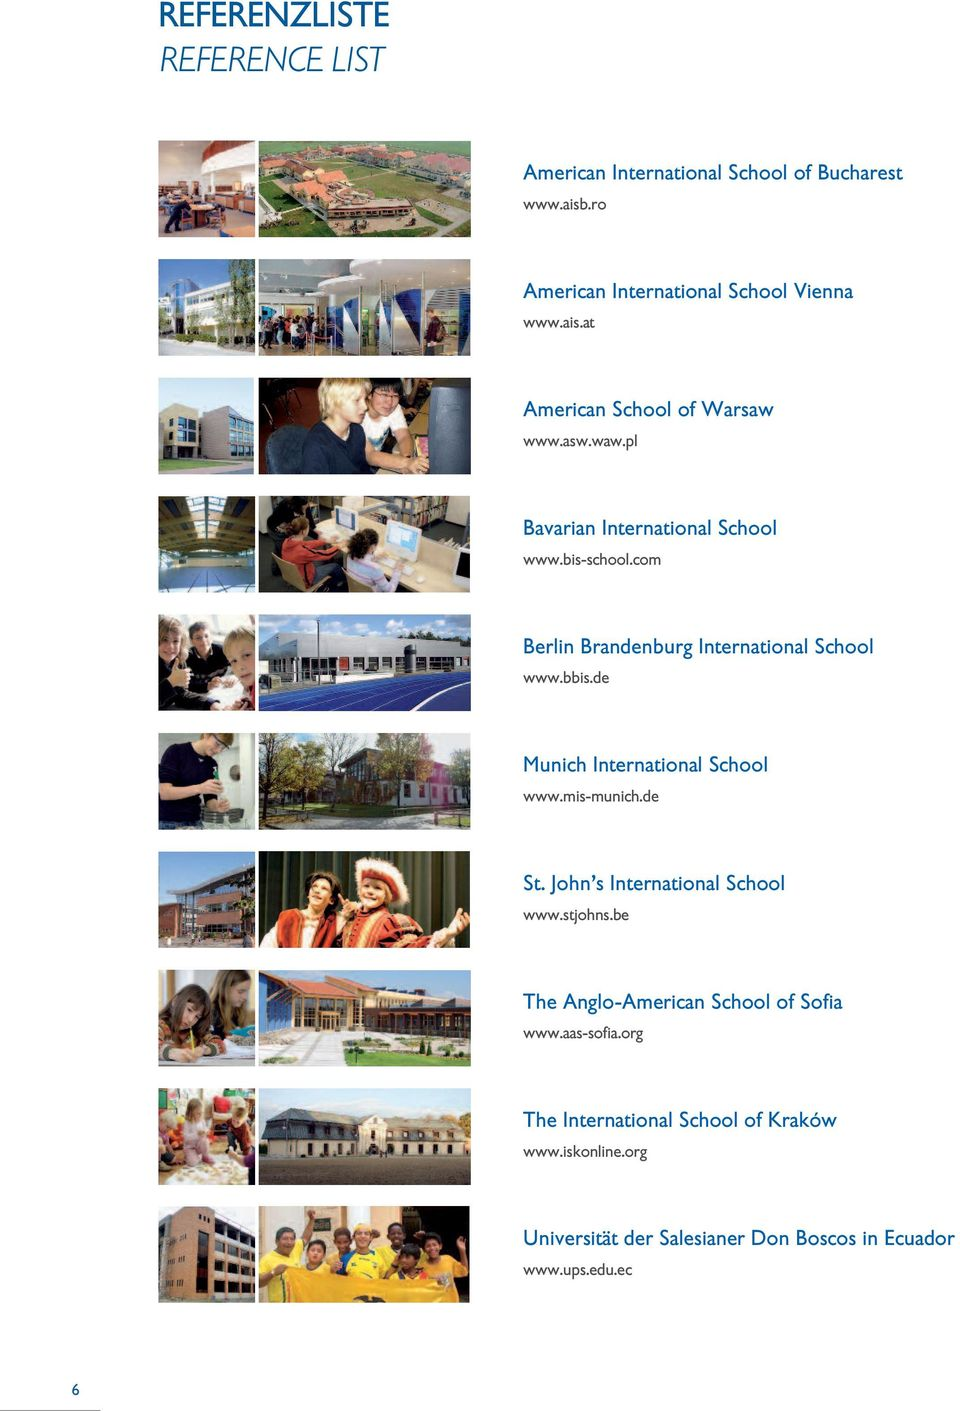 de Munich International School www.mis-munich.de St. John s International School www.stjohns.be The Anglo-American School of Sofia www.